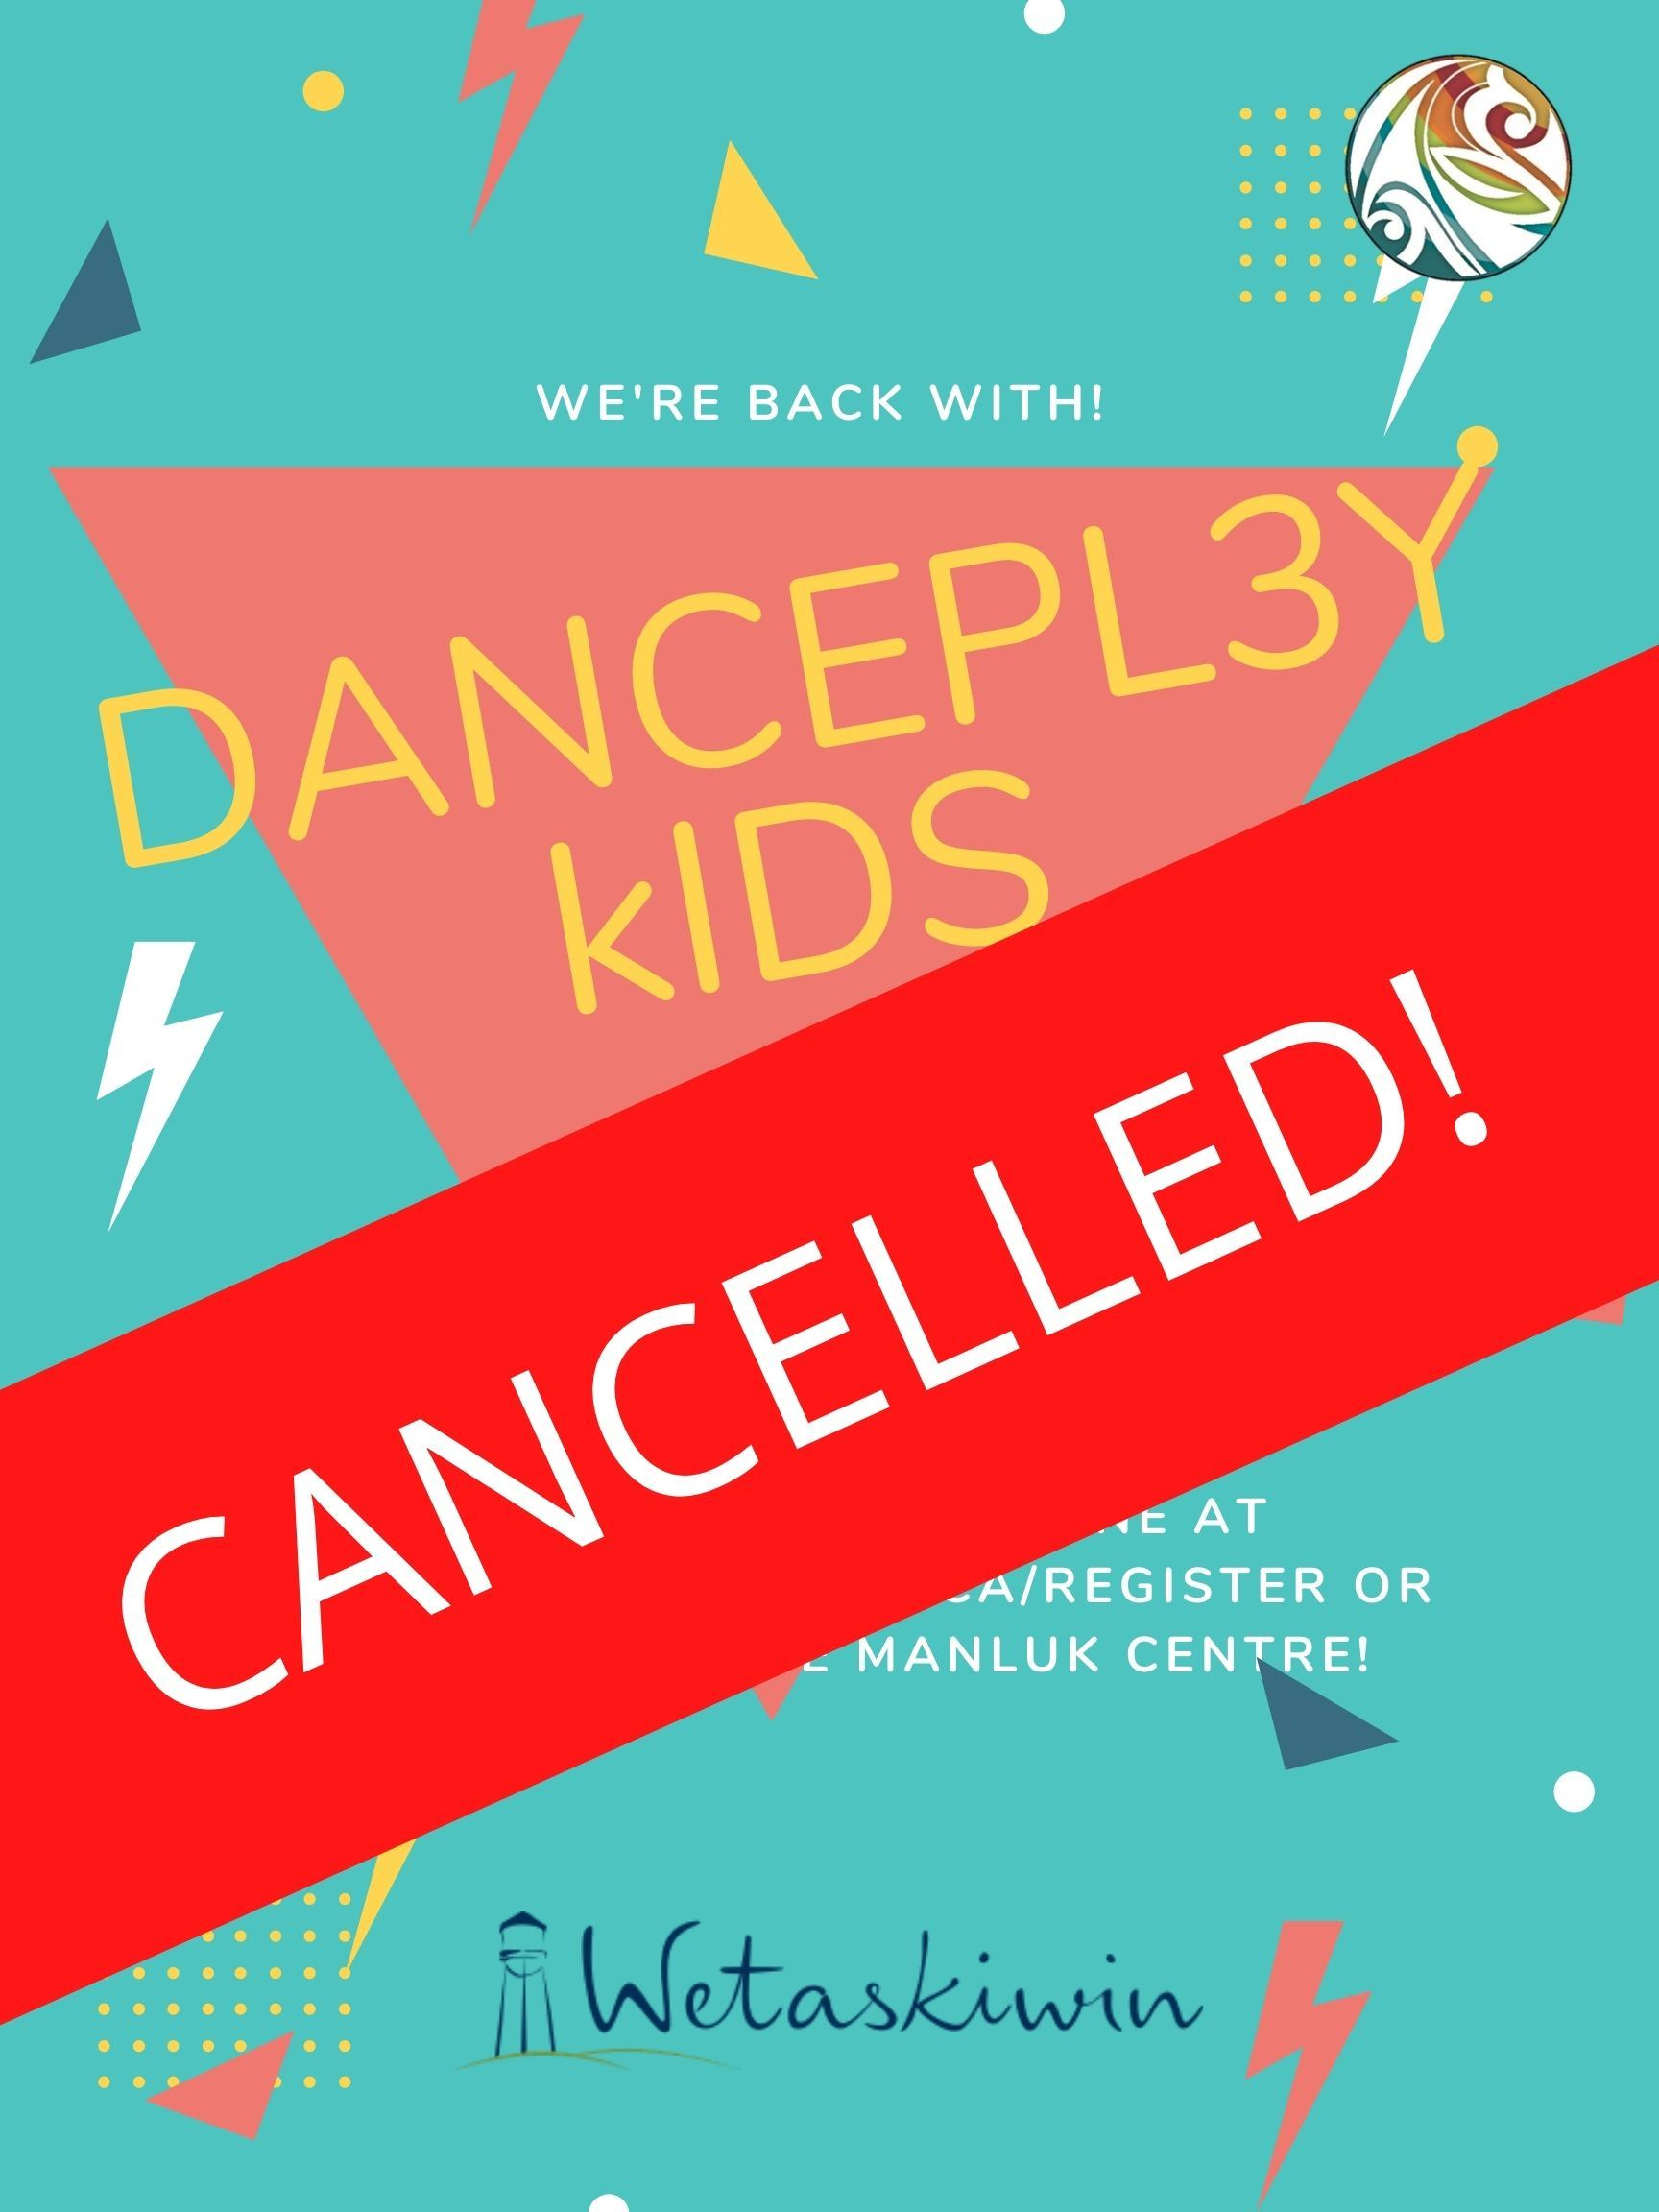 Cancelled! DANCEPL3Y Kids Fall 2020